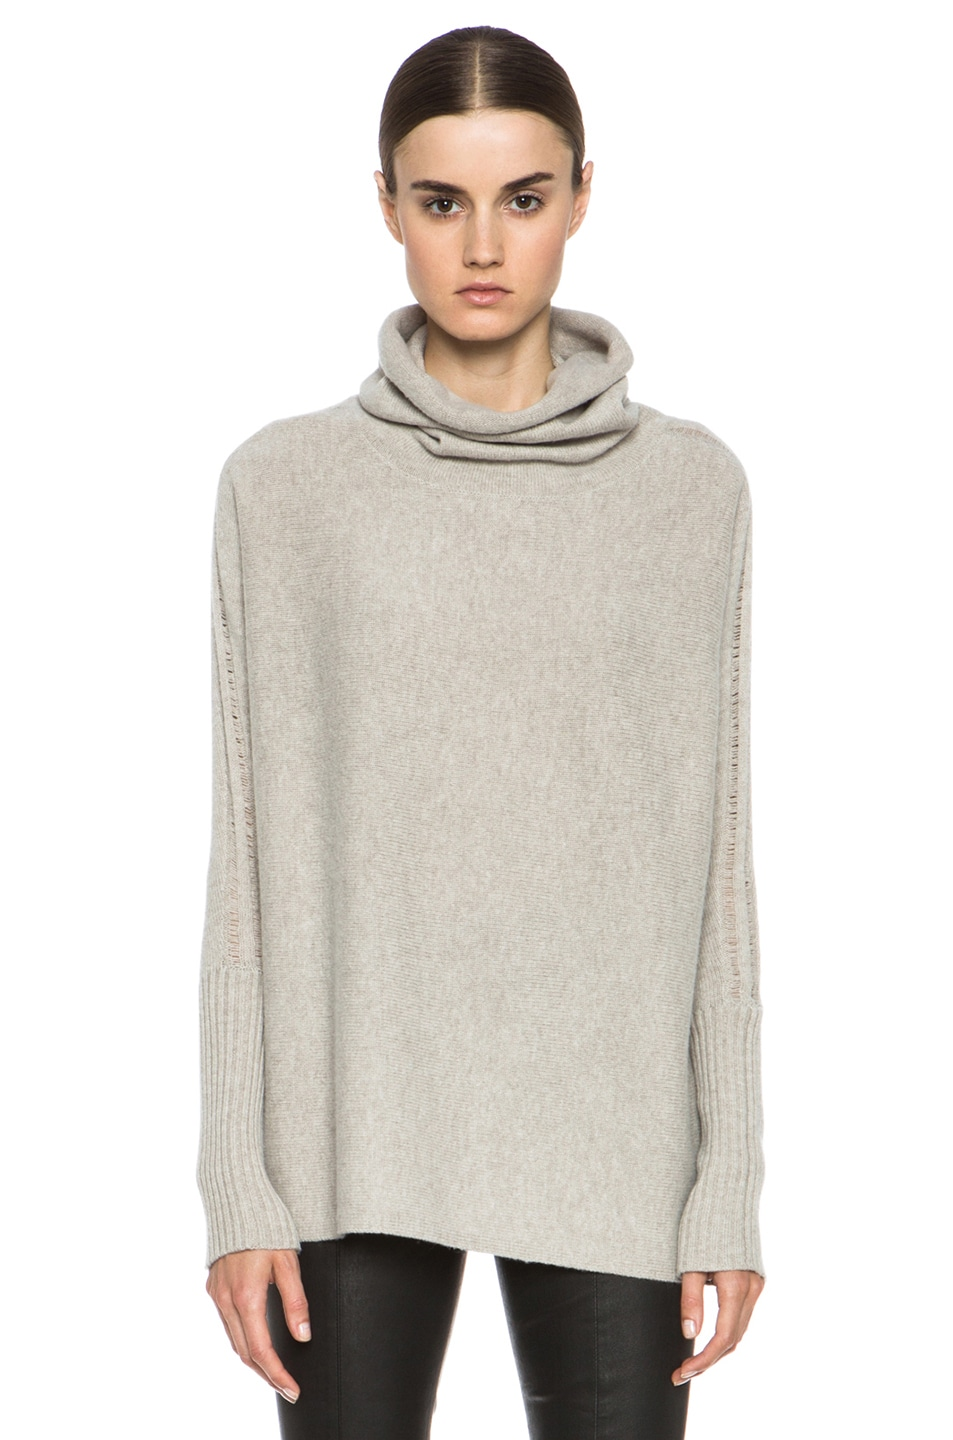 Image 1 of Tess Giberson Unstructured Wool-Blend Turtleneck in Natural